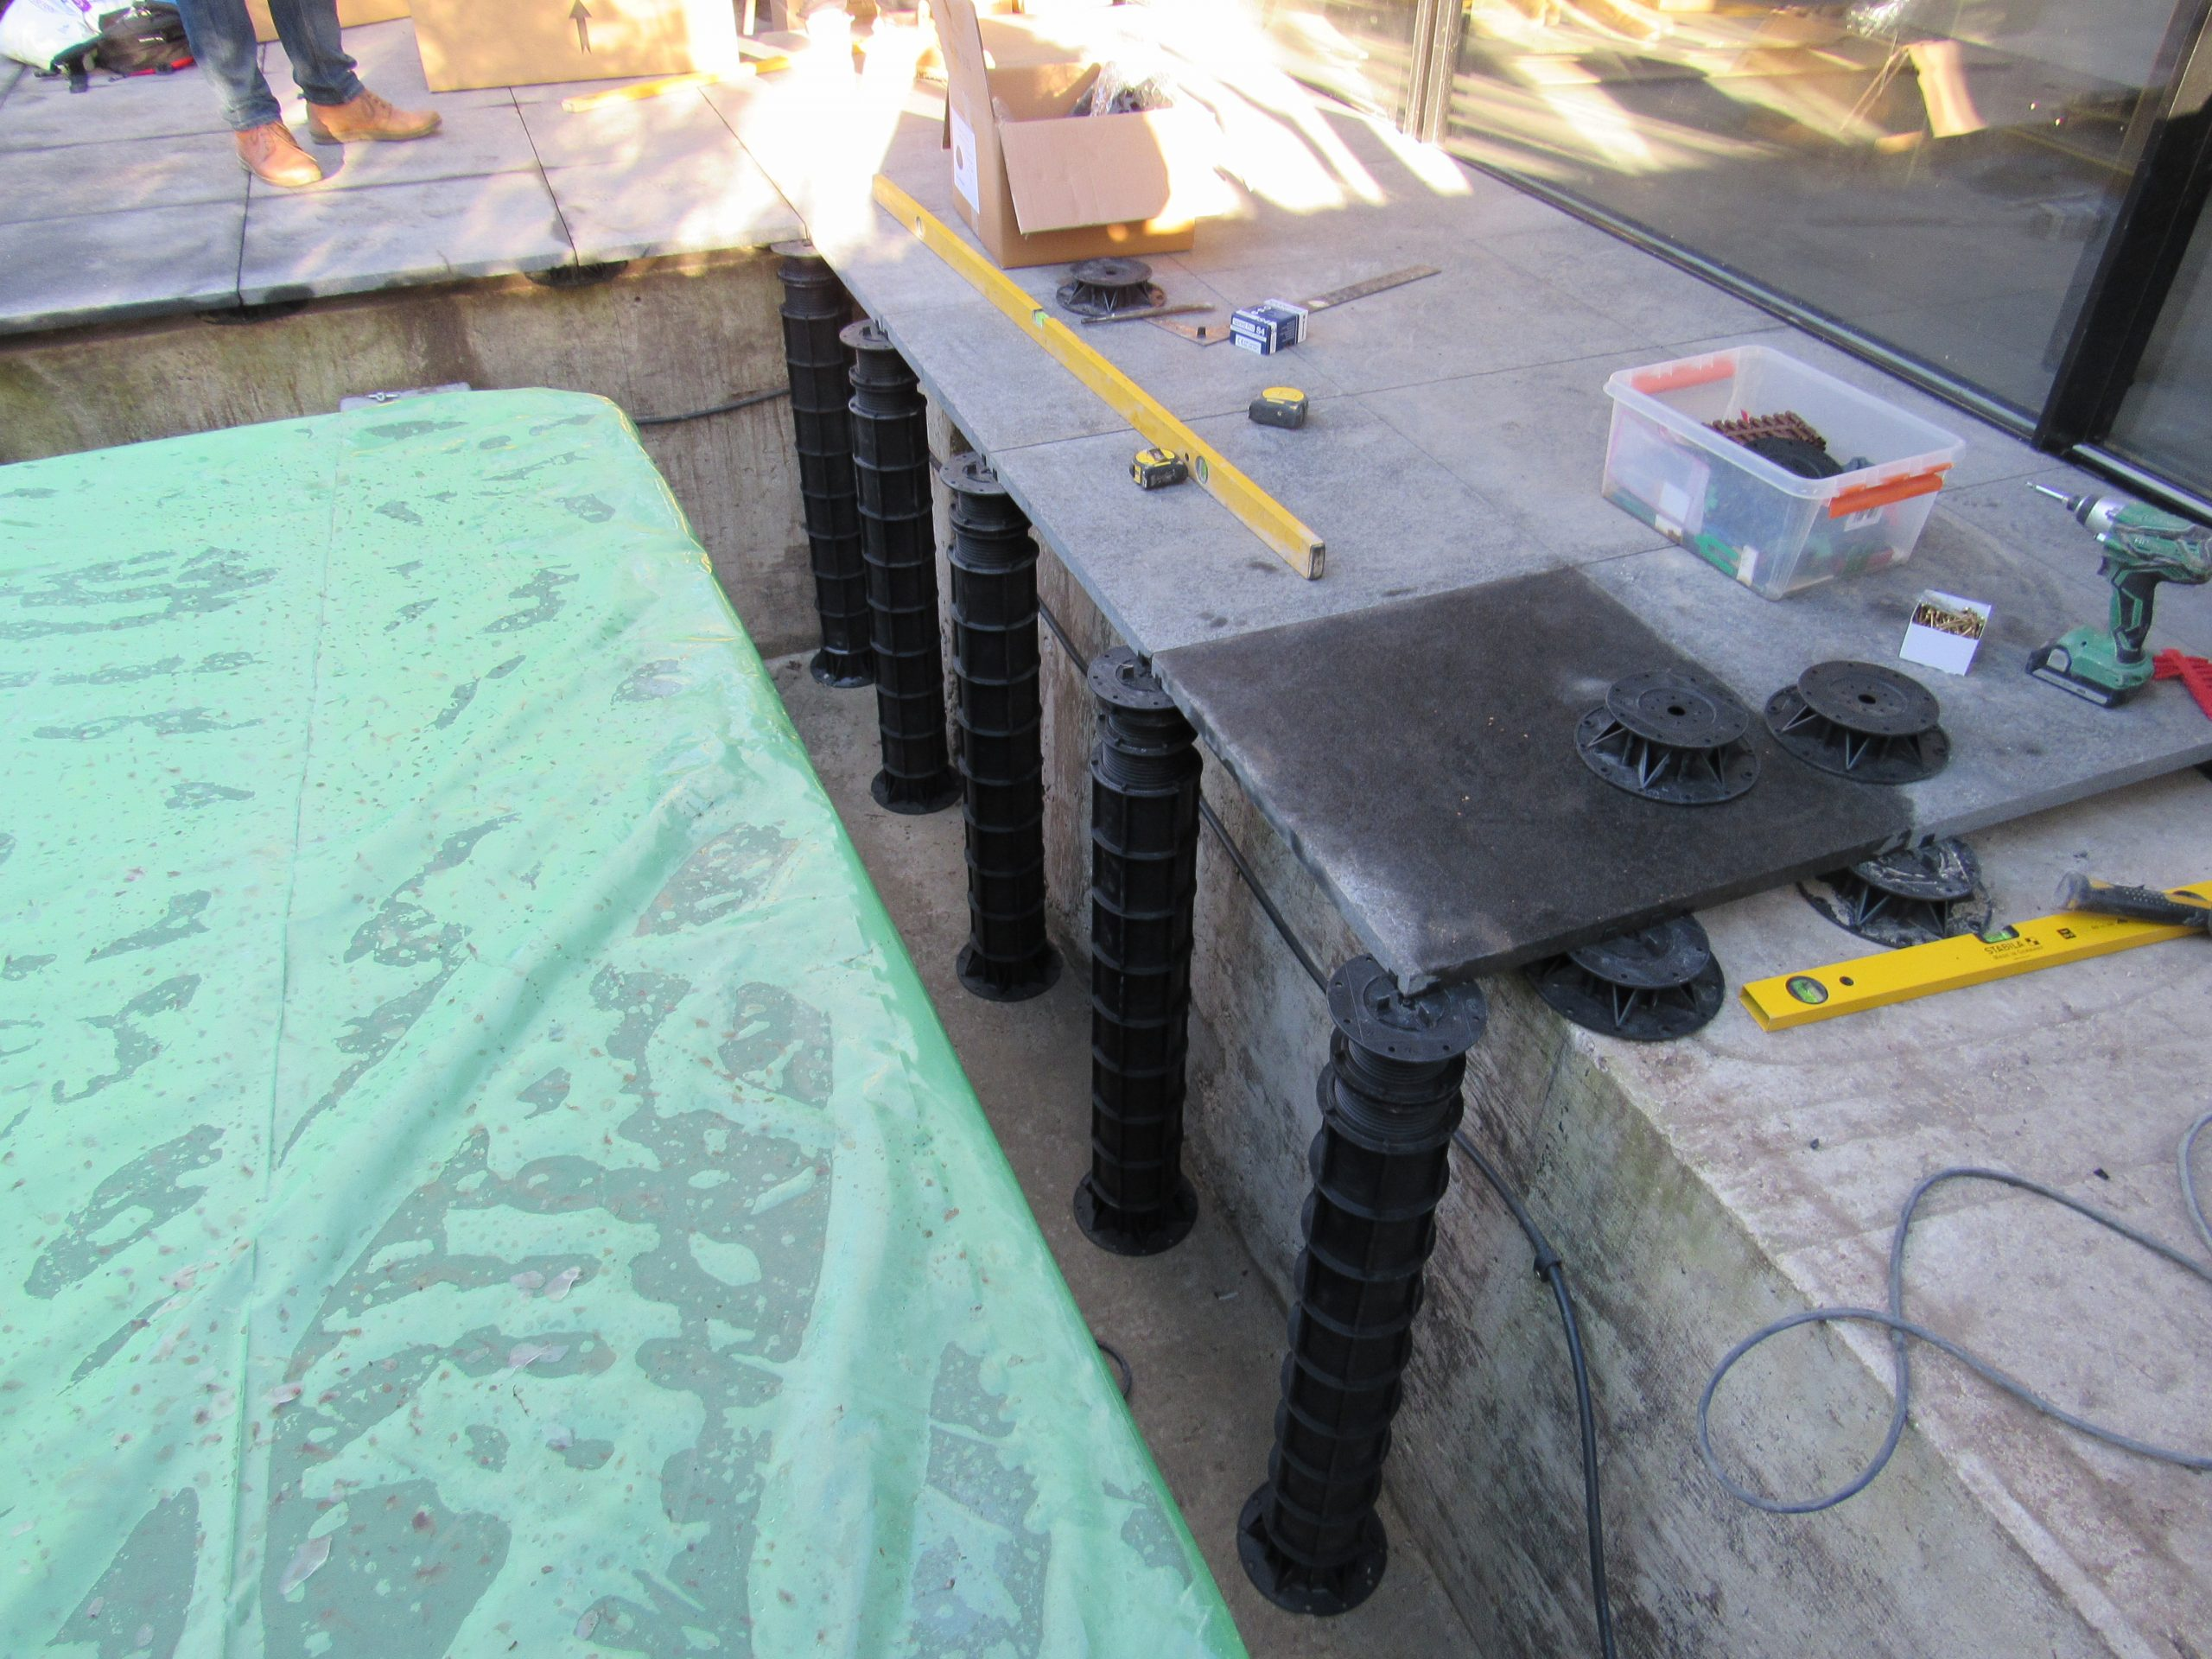 Megapad adjustable pedestals on jacuzzi project